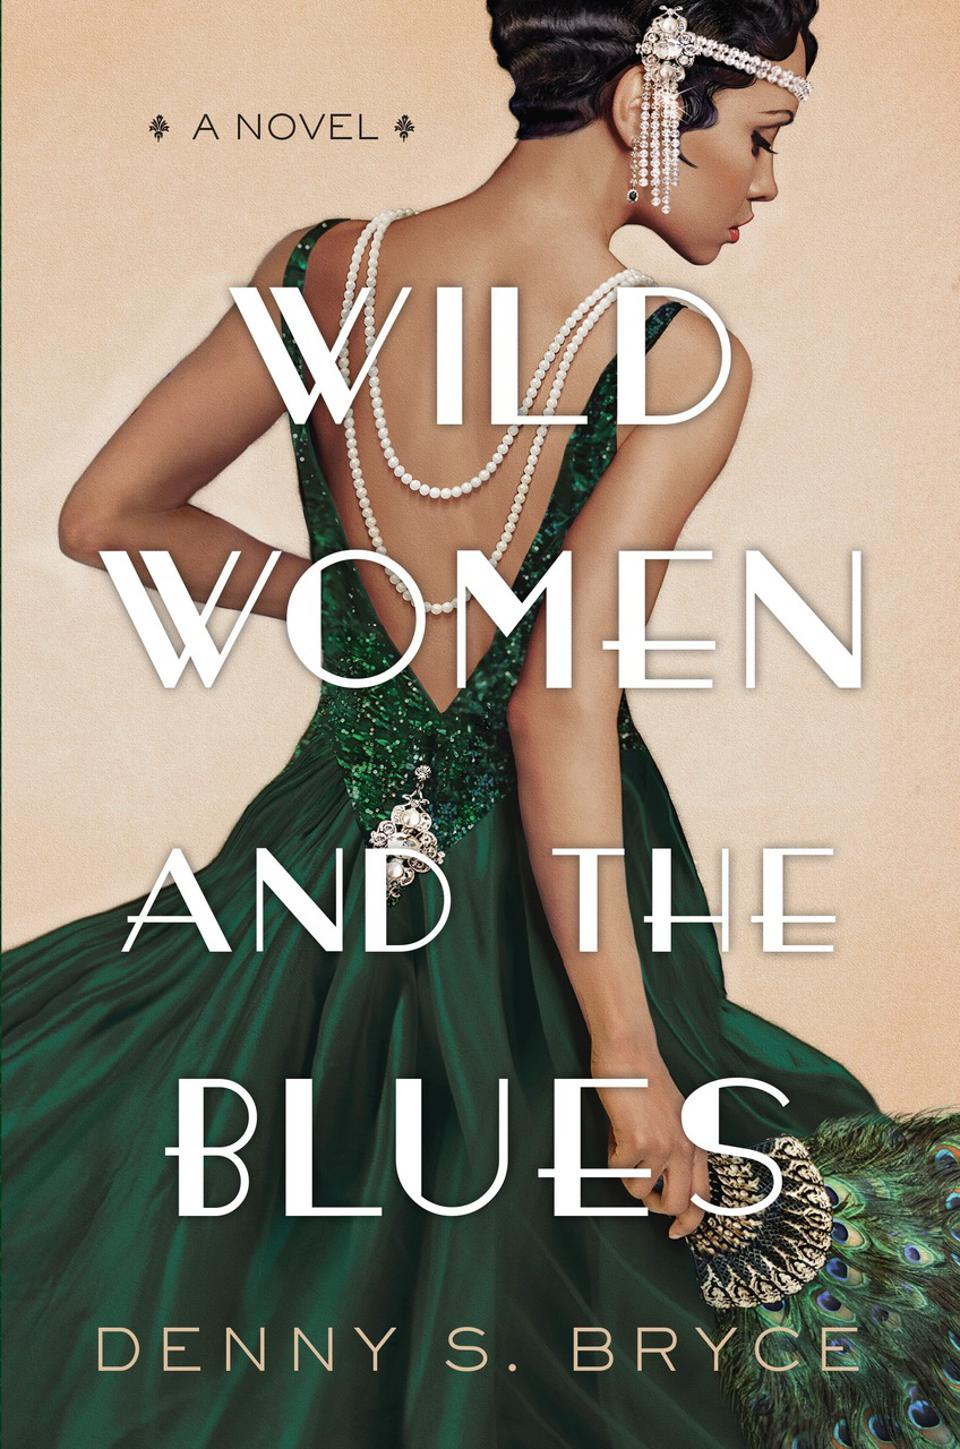 wild women and the blues book cover novel denny s. bryce kensington